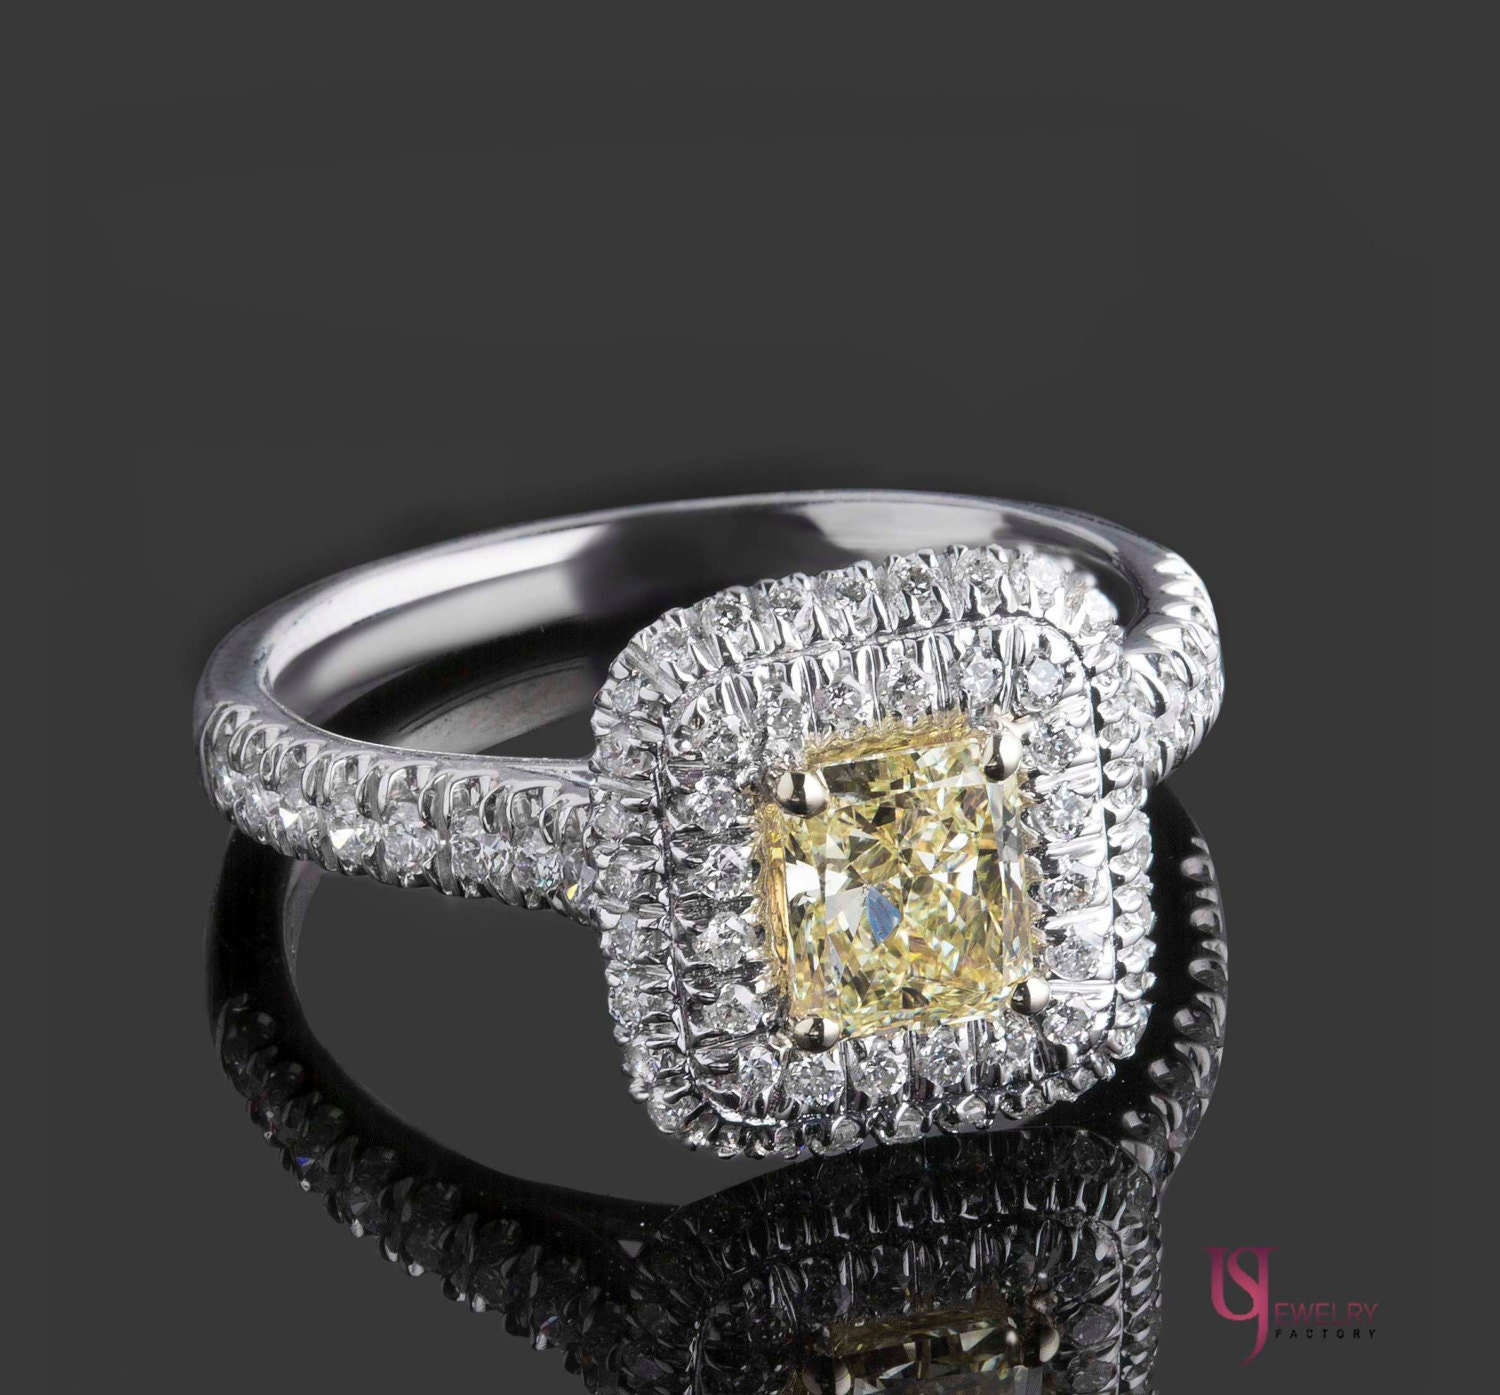 Engagement ring christmas ornament - Natural Fancy Yellow Diamond Radiant Cut Engagement Ring 1 34 Tcw Double Halo Diamond Ring